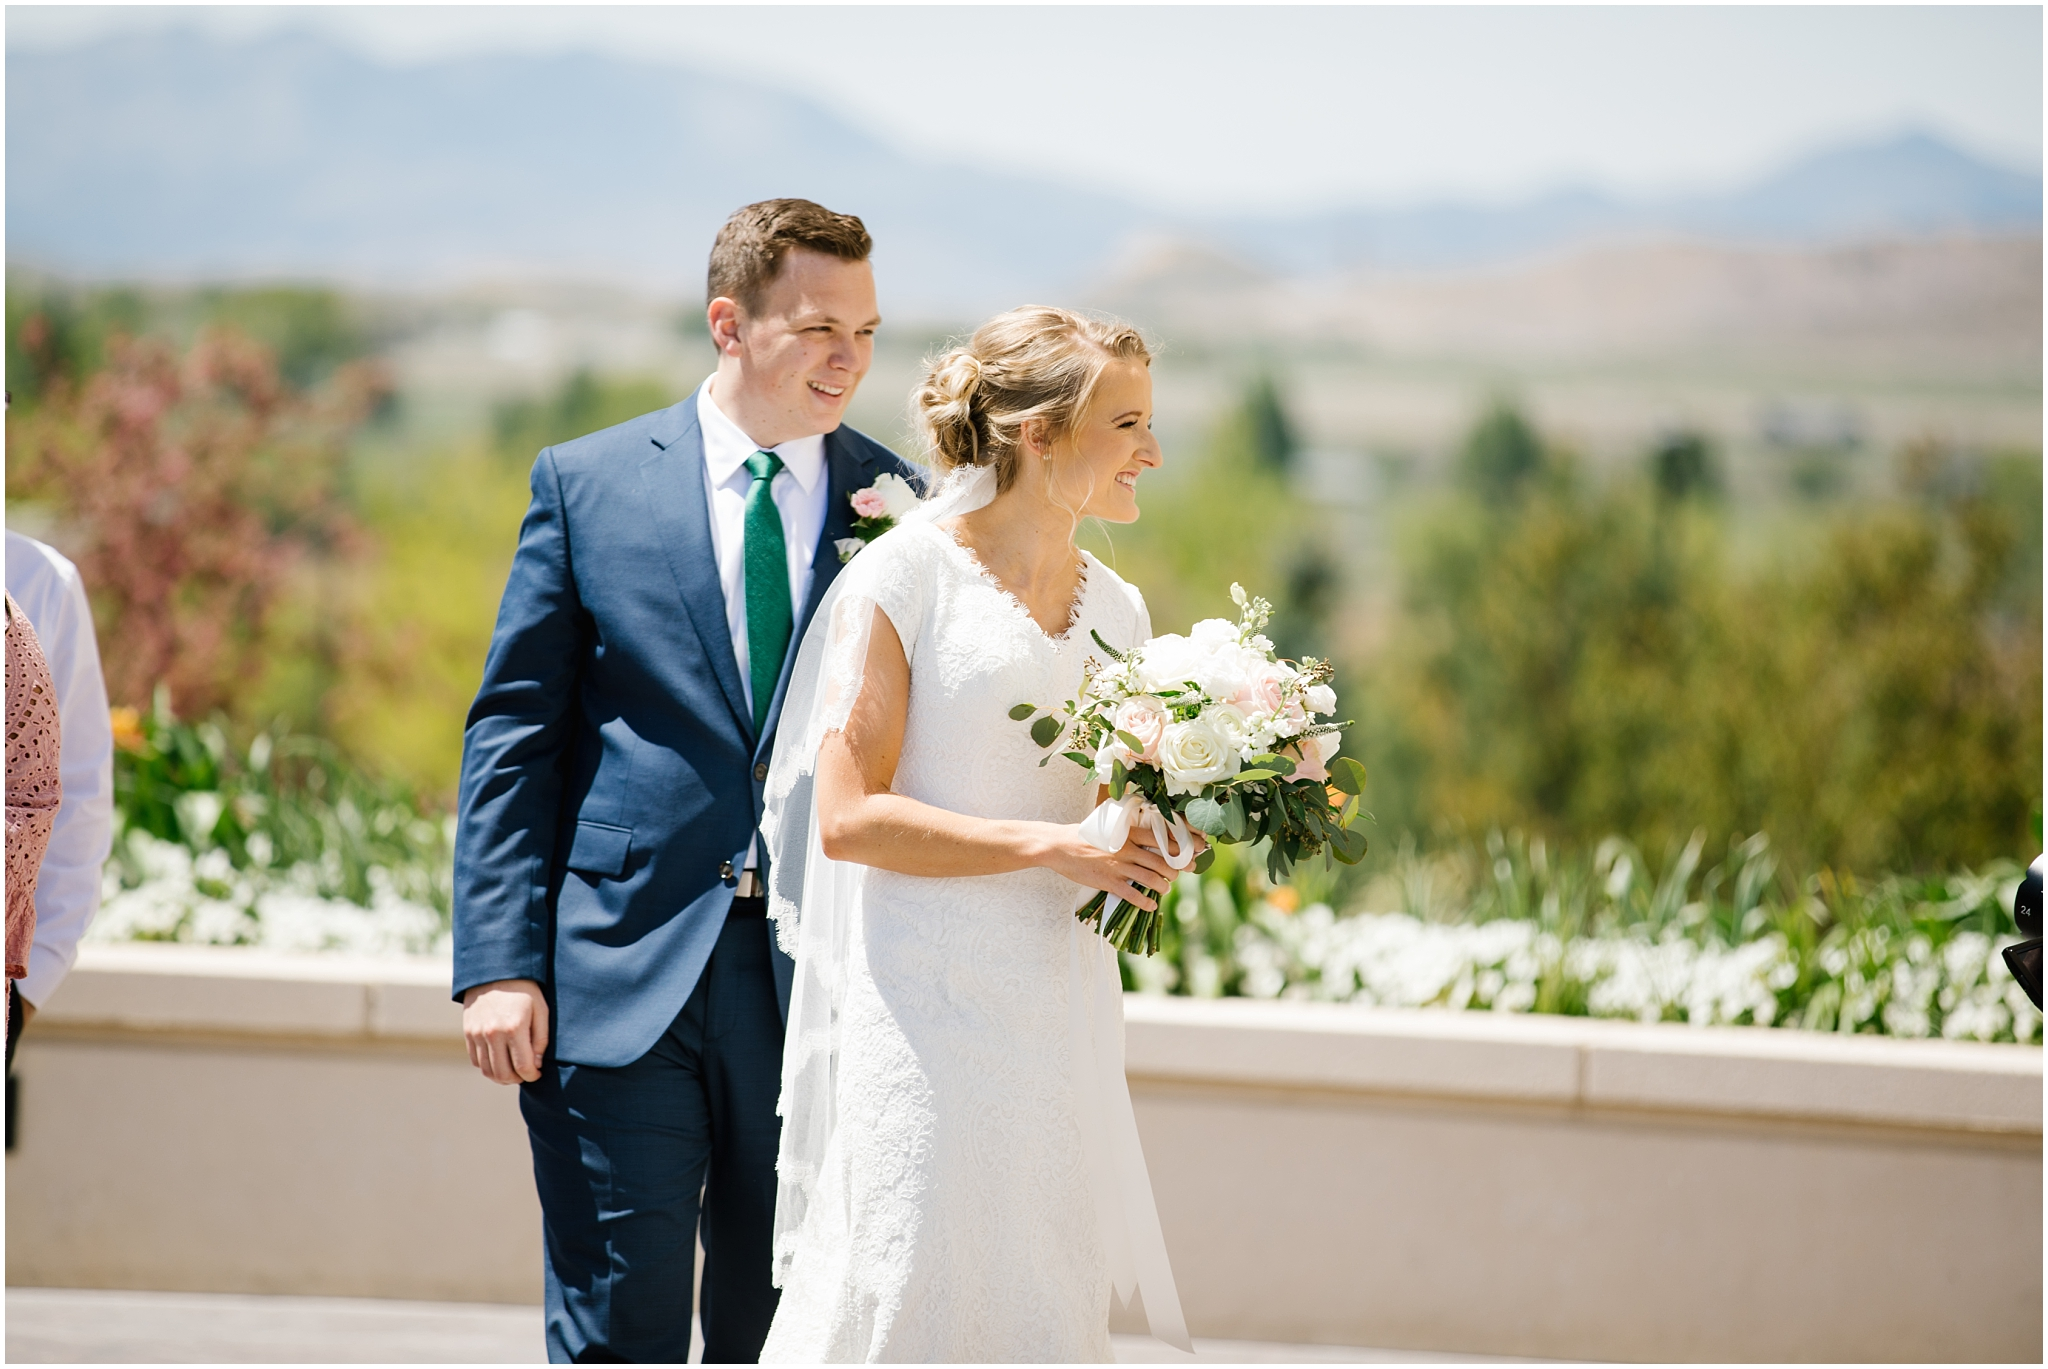 Lizzie-B-Imagery-Utah-Wedding-Photographer-Thanksgiving-Point-Payson-Temple_0034.jpg